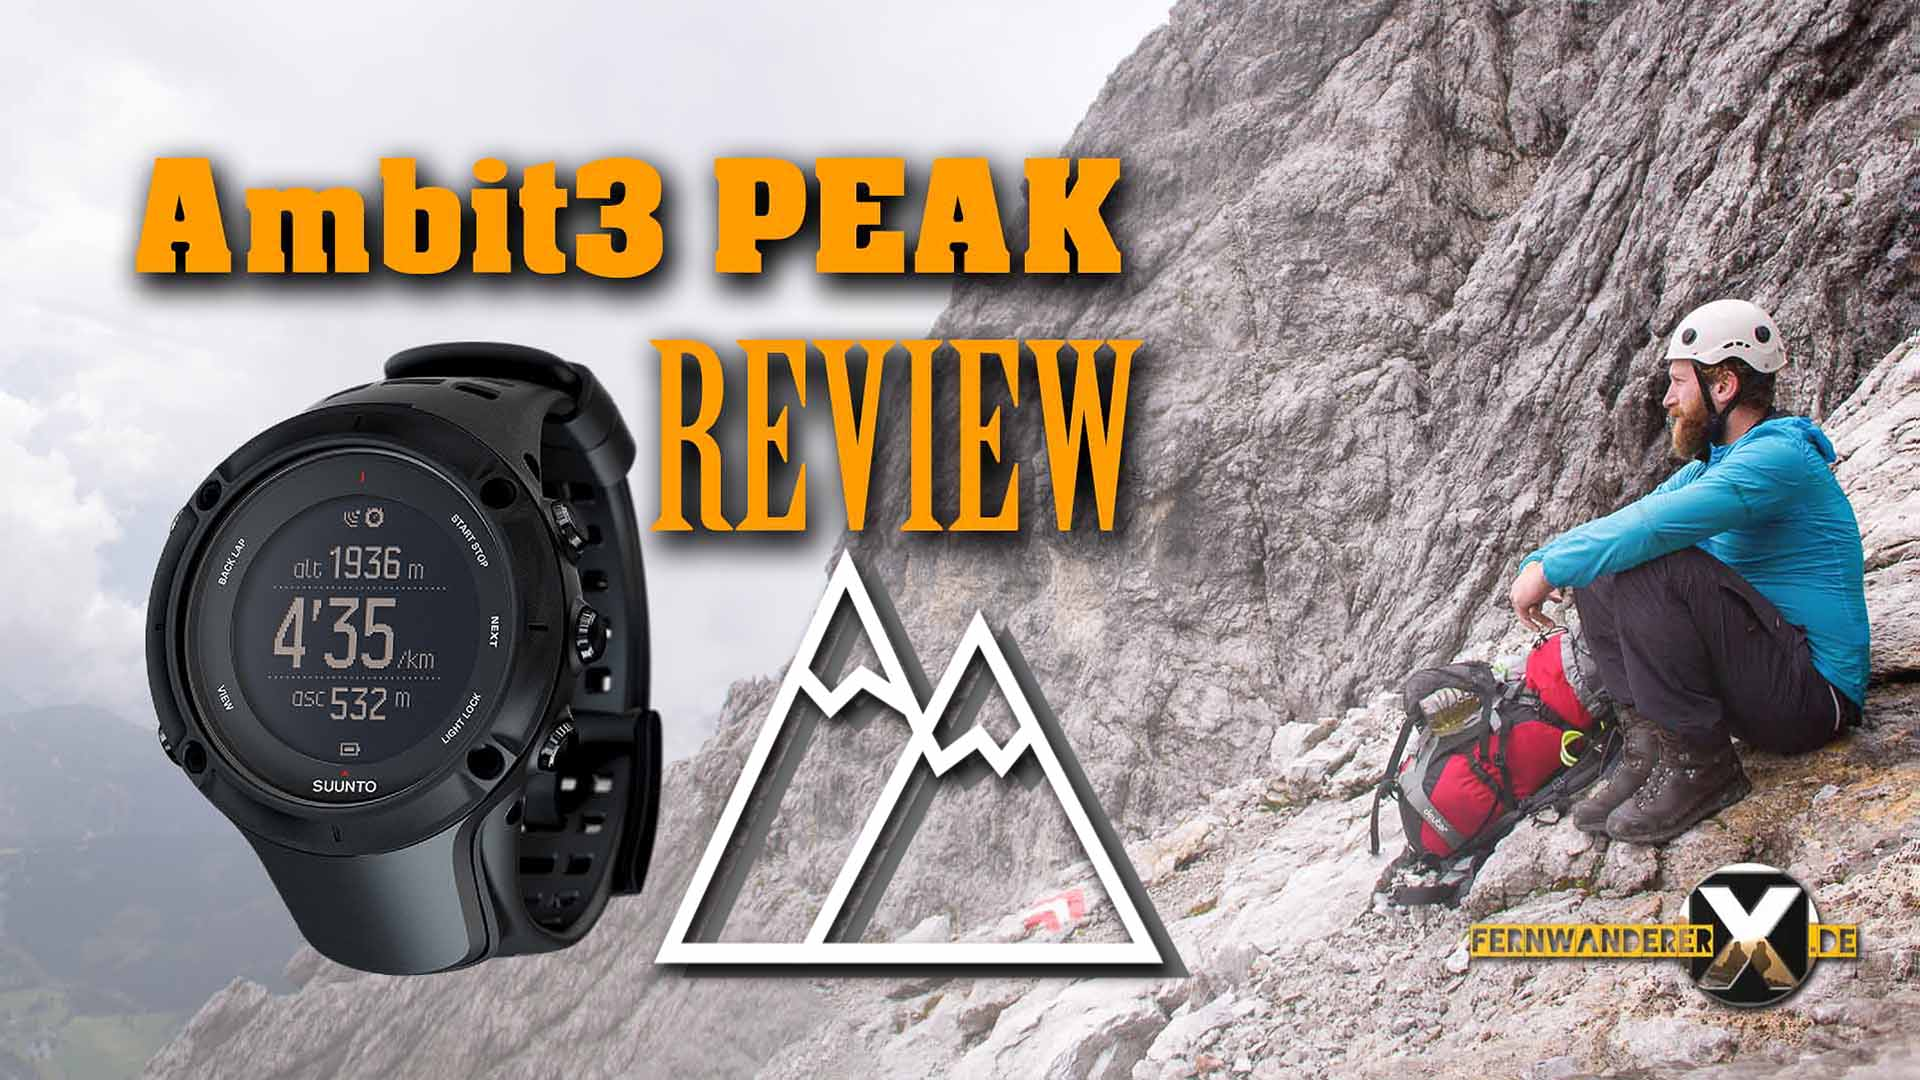 [:de]Suunto Ambit3 PEAK Review [:en]The Suunto Ambit3 PEAK Review[:]